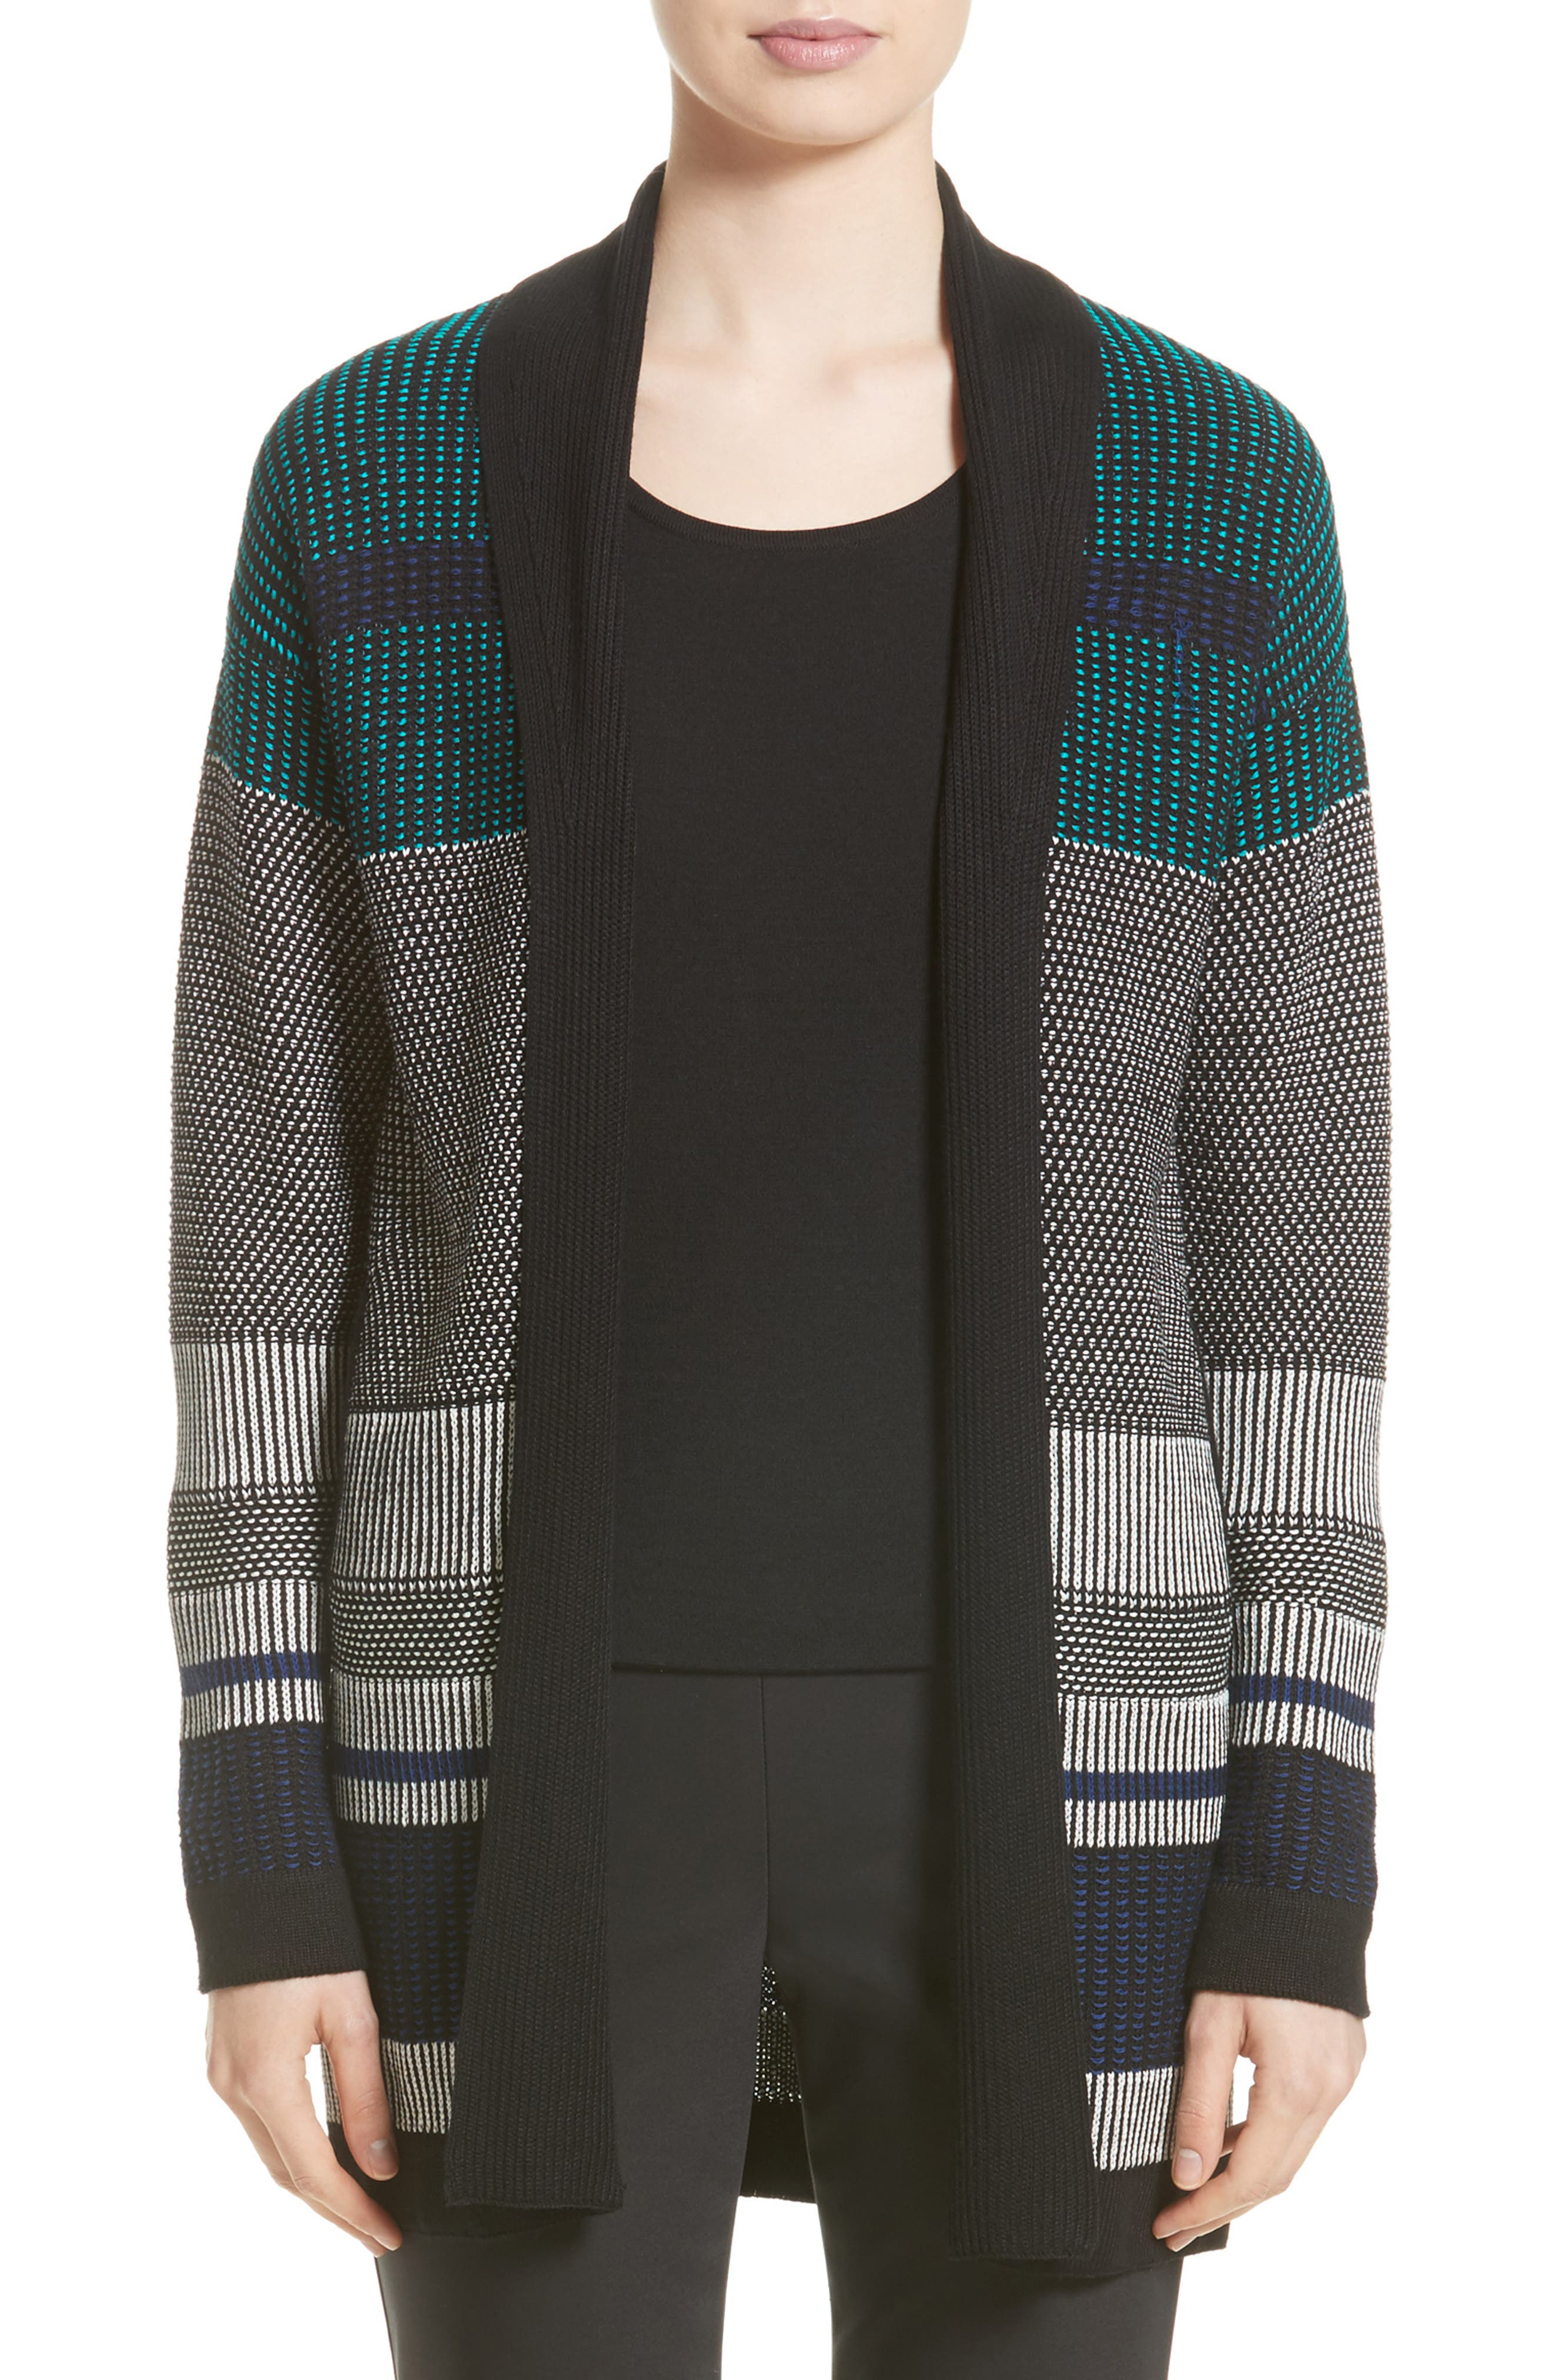 Engineered Inlay Stitch Knit Cardigan,                             Main thumbnail 1, color,                             020